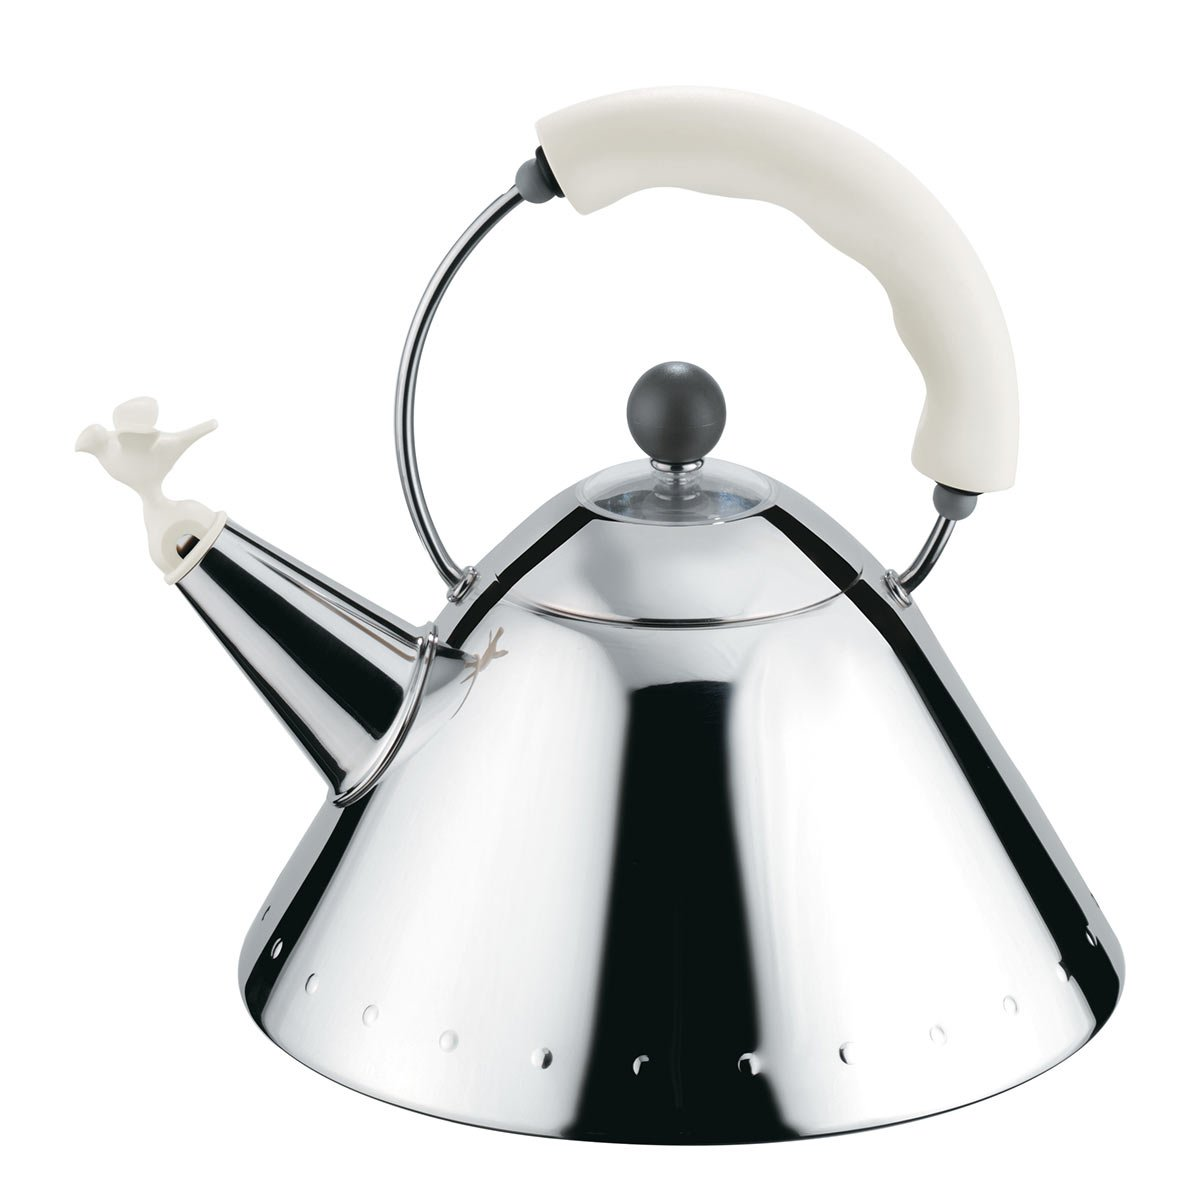 Alessi Kettle in 18/10 Stainless Steel Mirror Polished with Handle and Small Bird-shaped Whistle in Pa, White.